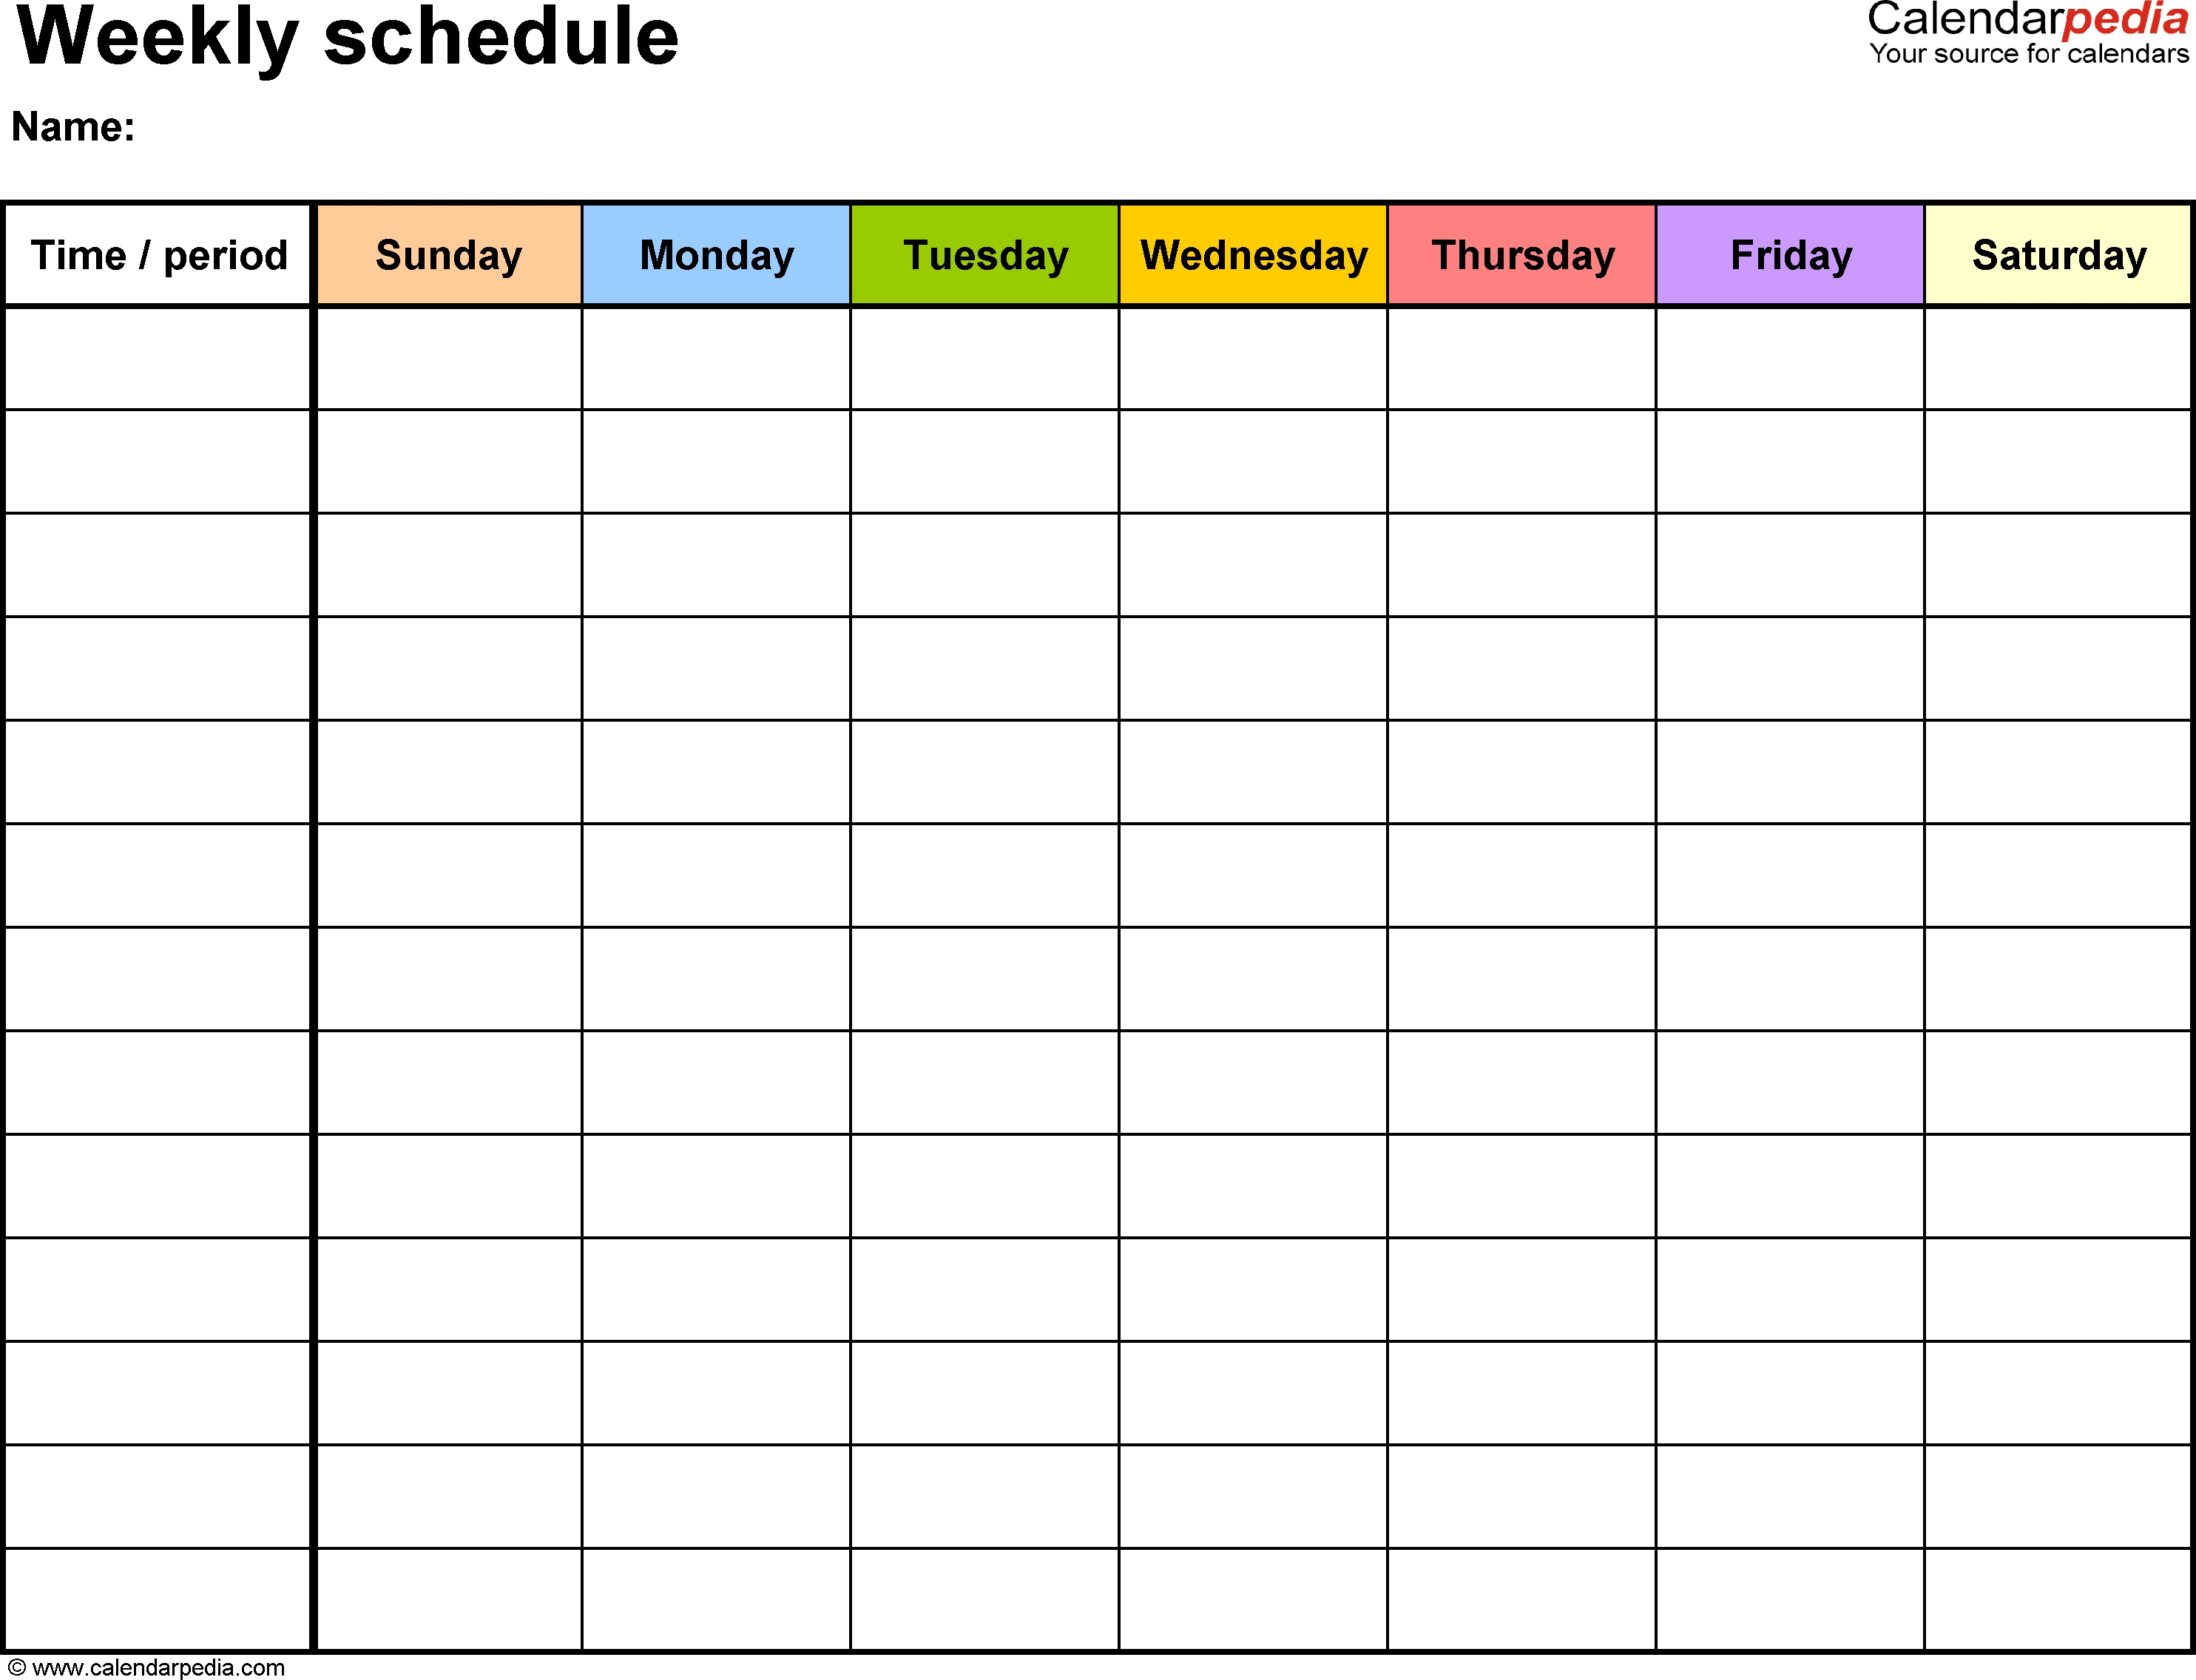 Free Weekly Schedule Templates For Word - 18 Templates  Excel Calendar Week